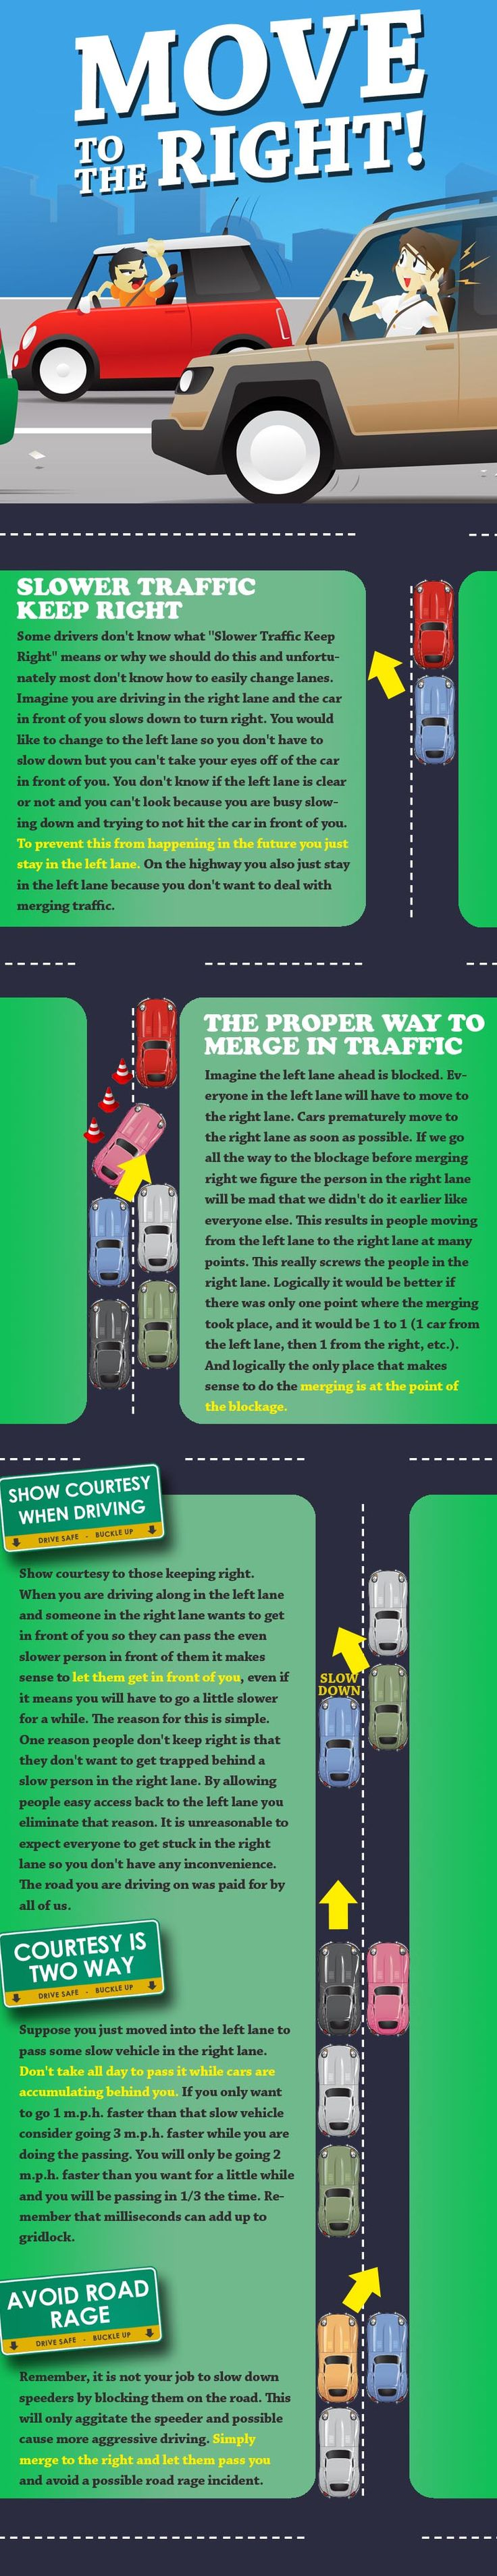 Great Driving Infographic & Tutorial For Moving To the Right When Driving   igottadrive.com  Courtesy of ElderlyDriver.org or Twitter @ ElderlyD